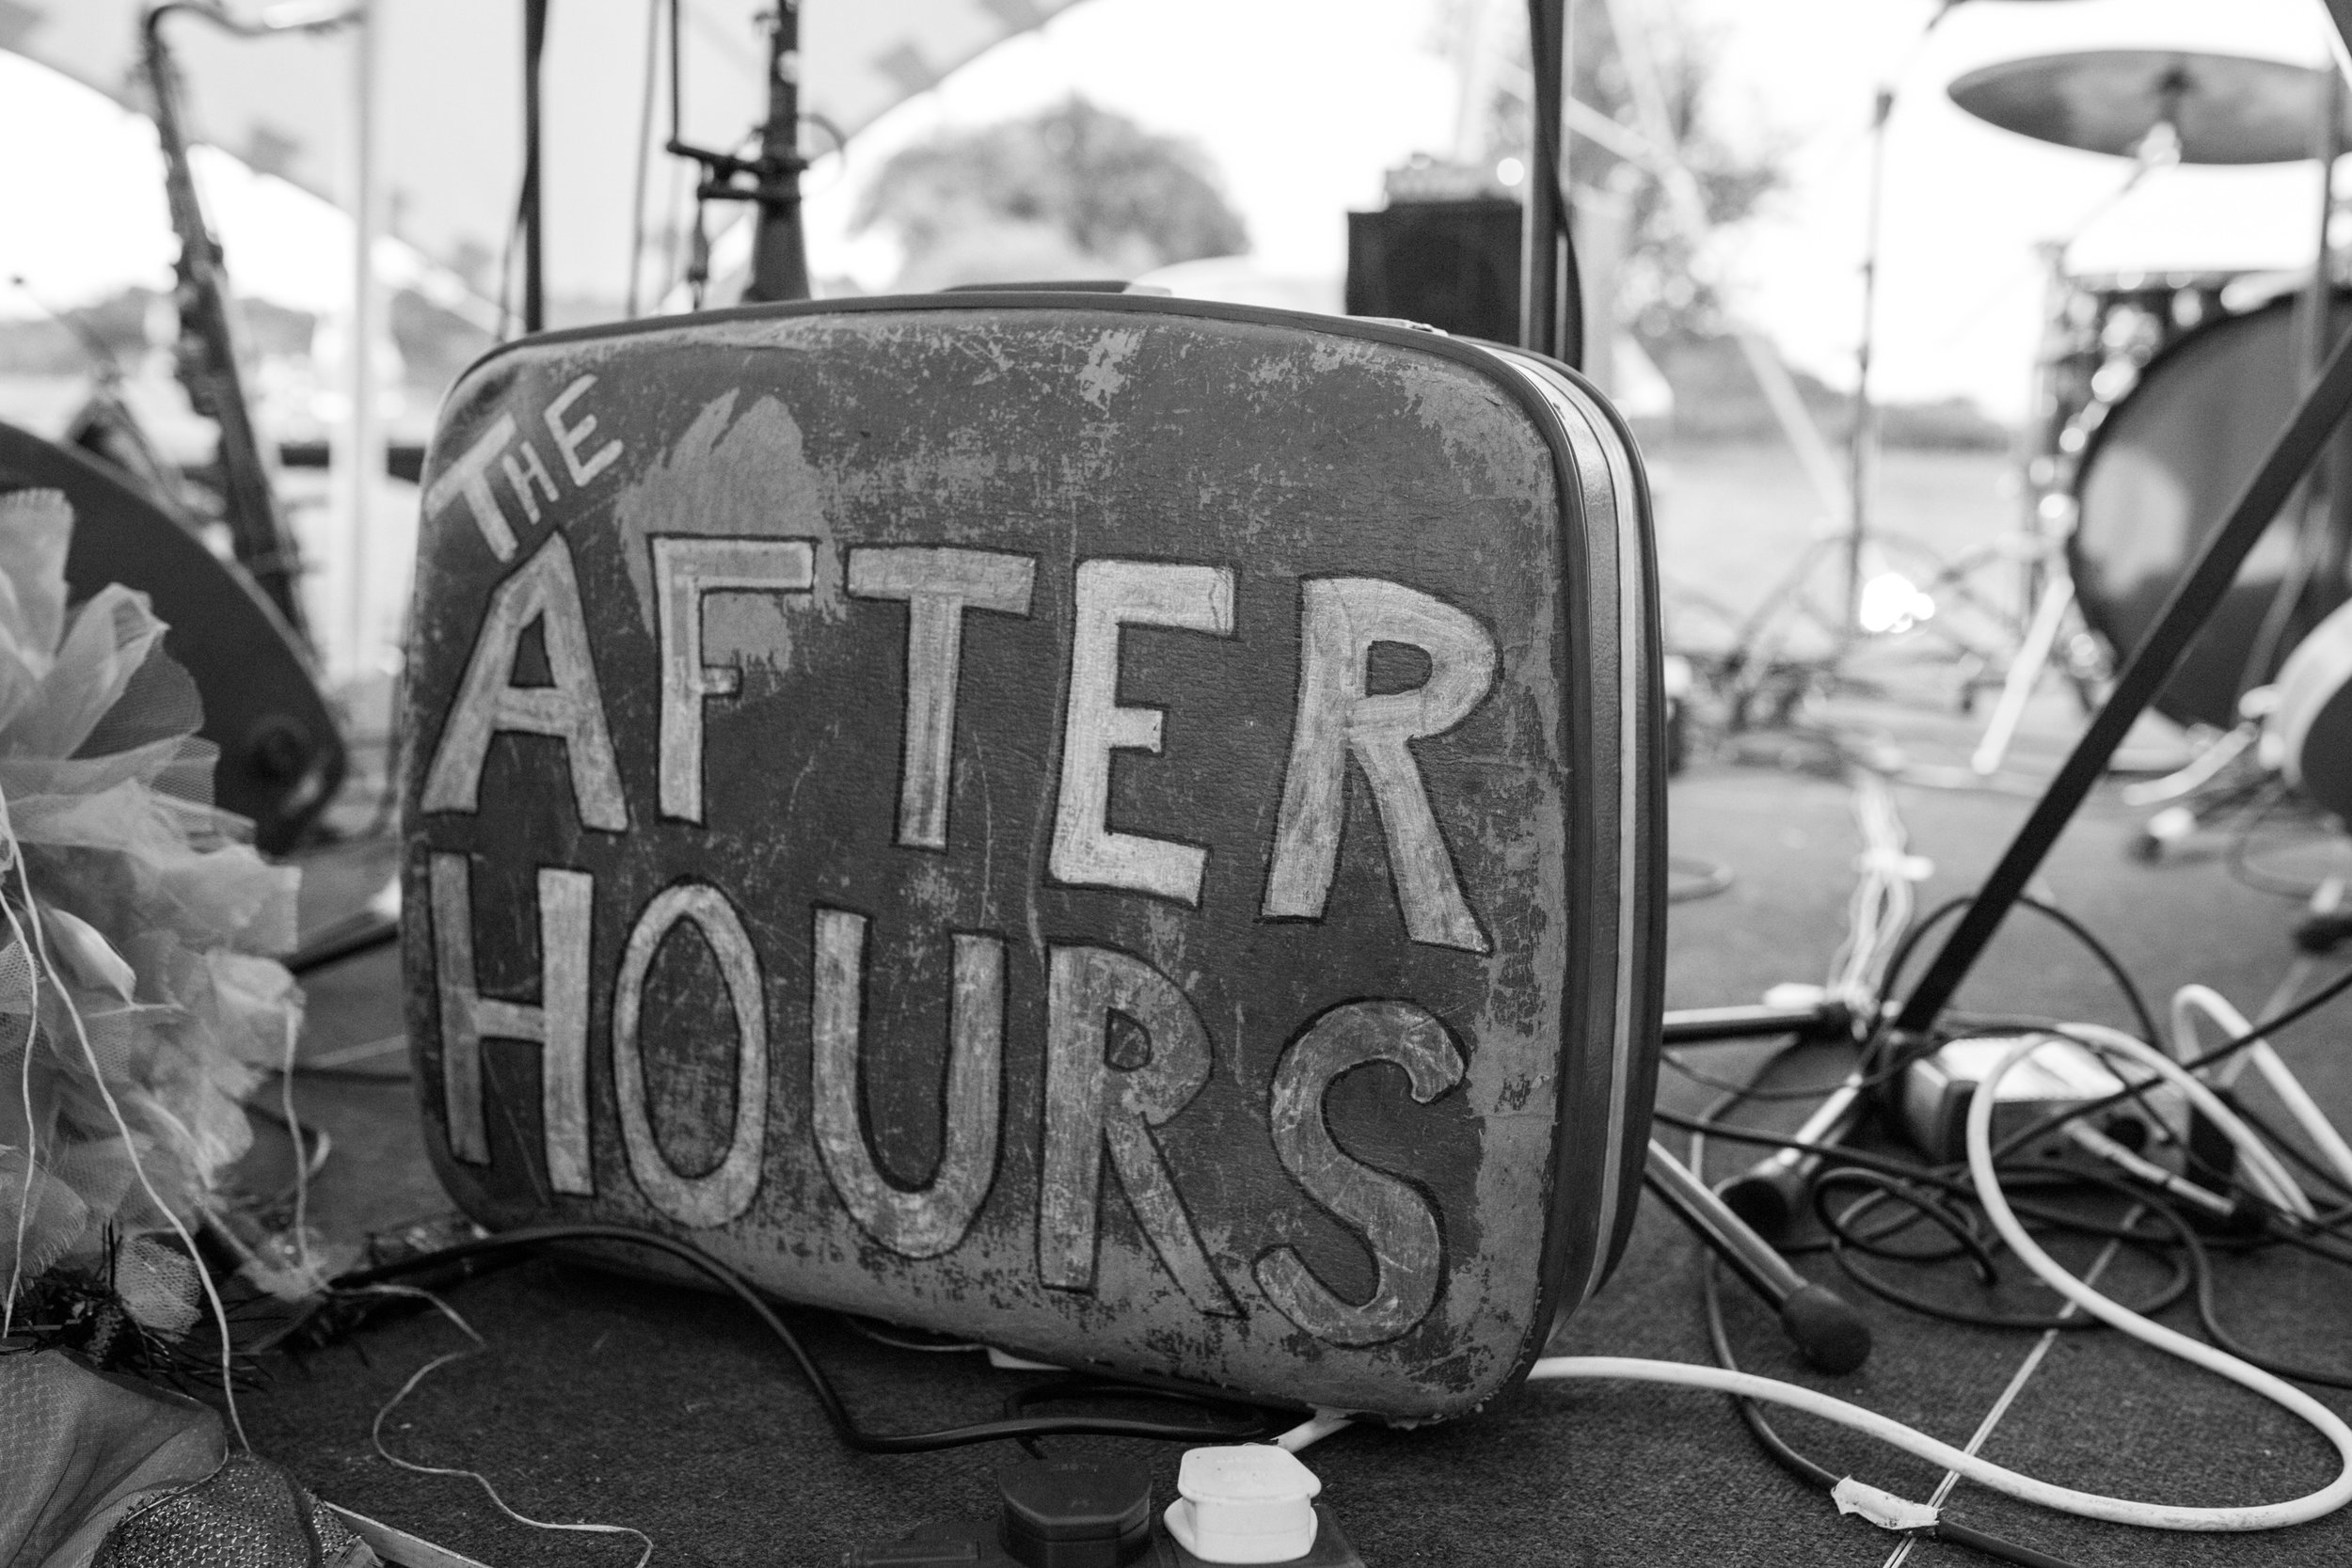 The After Hours, live electro swing band